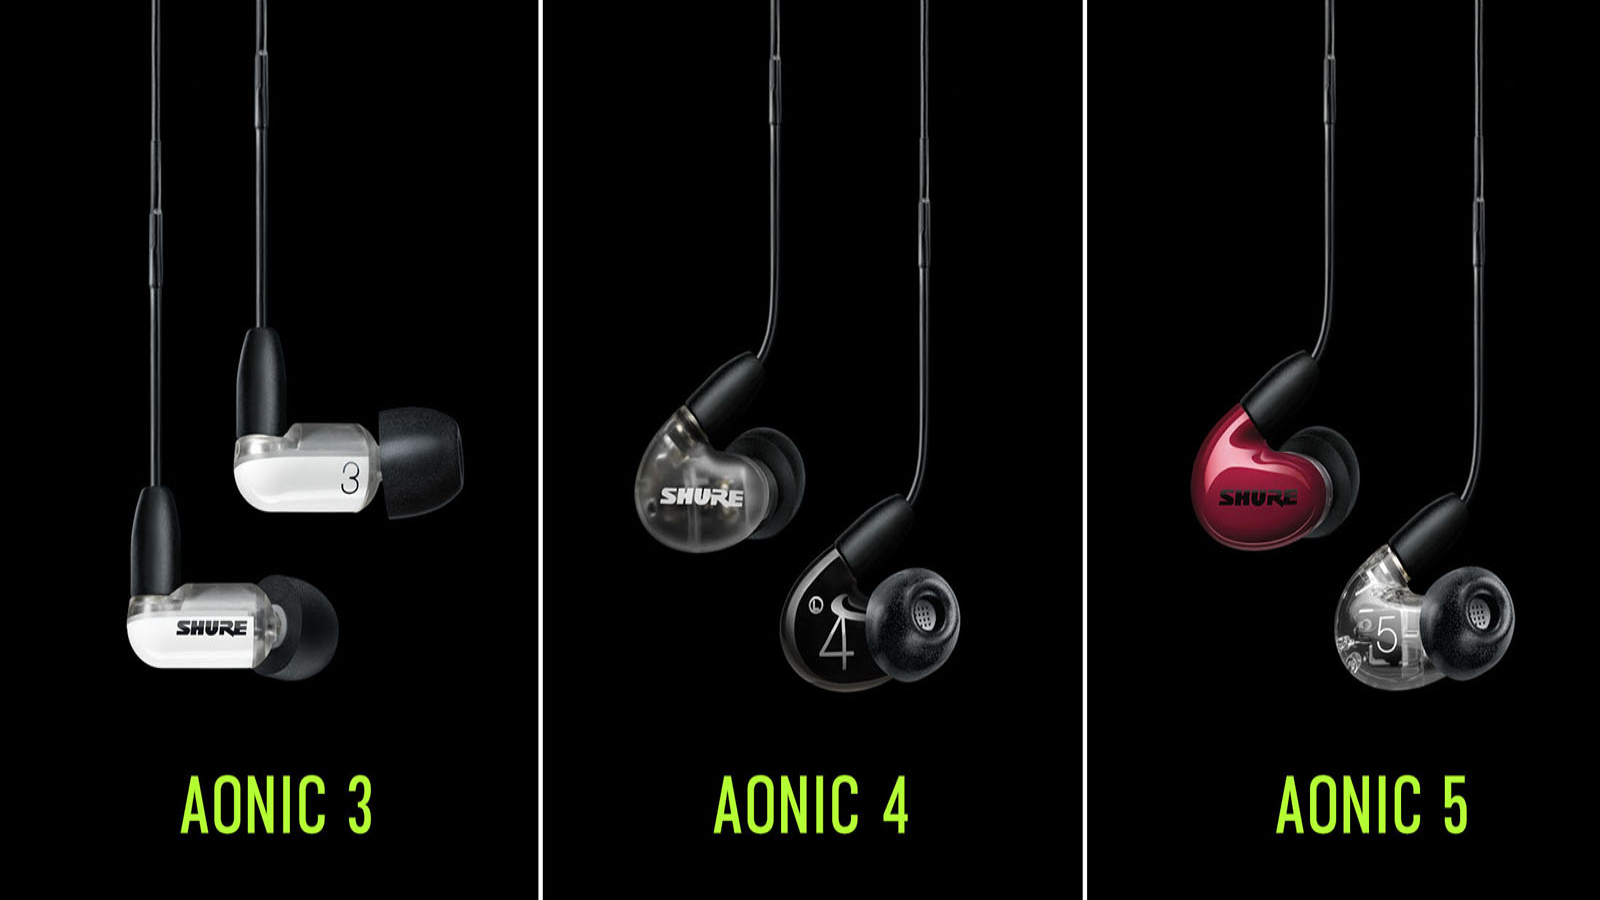 Shure Expands AONIC Listening Line, Providing A New Suite Of Headphones And Earphones